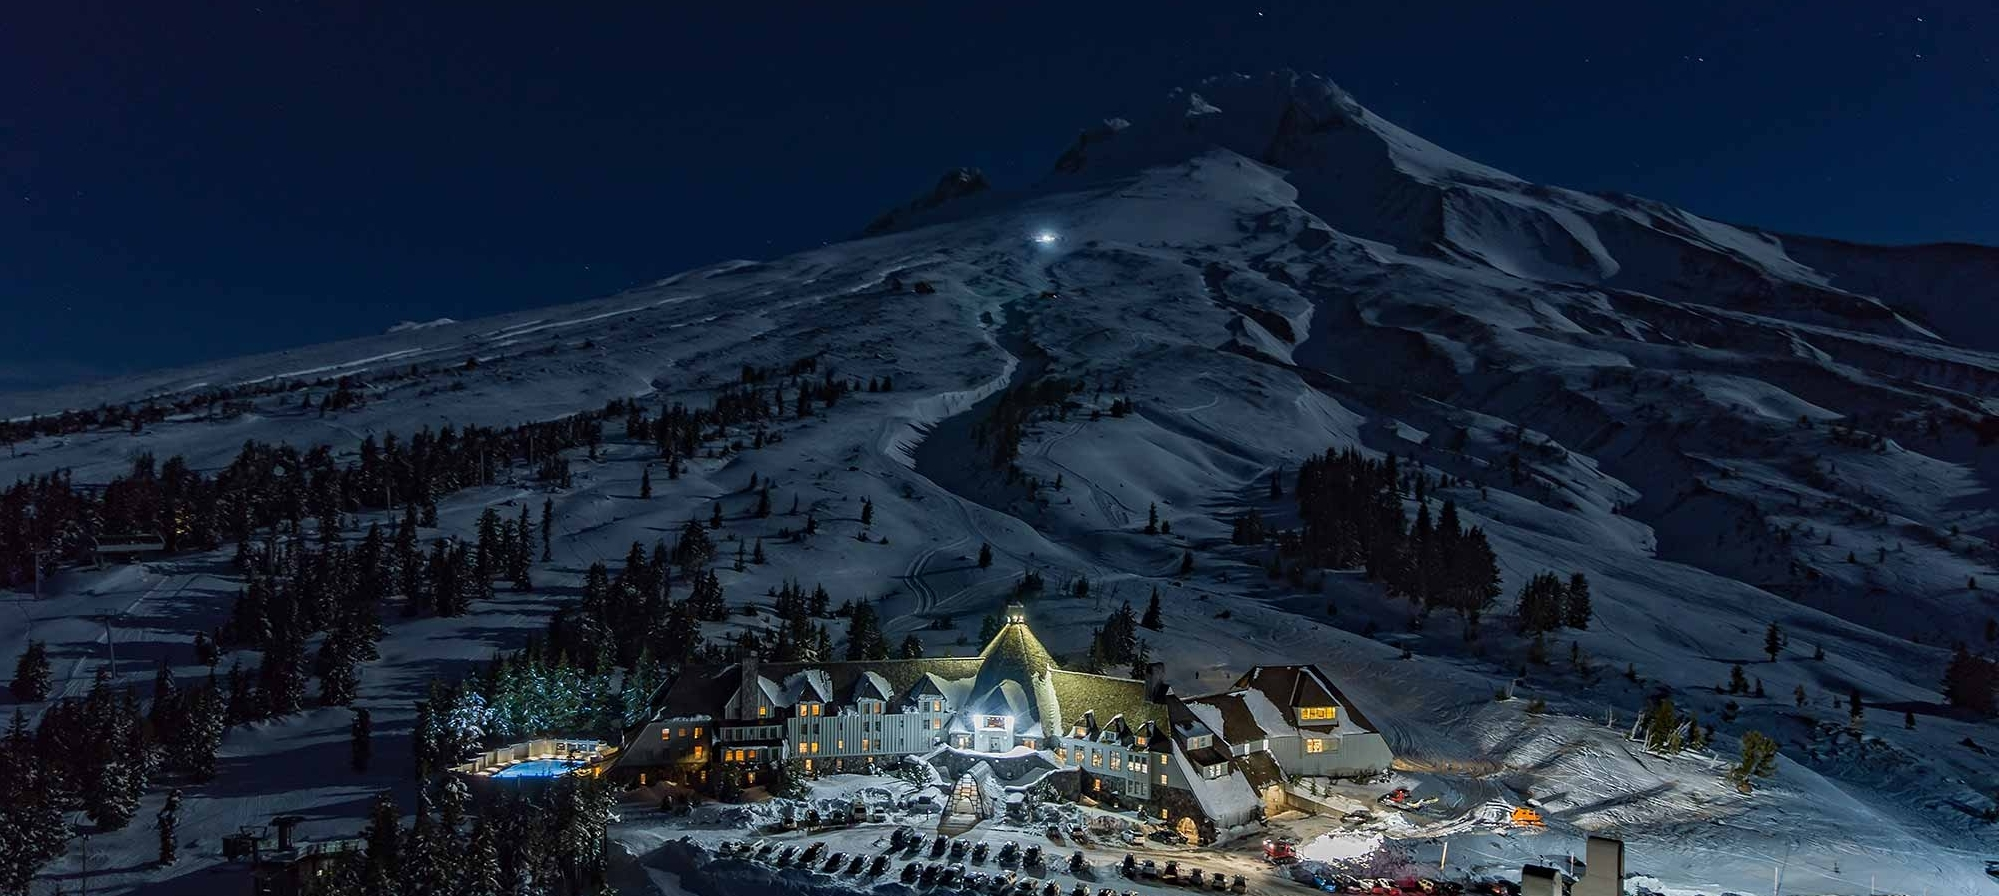 Timberline Lodge The Shining S Overlook Hotel Unusual Places